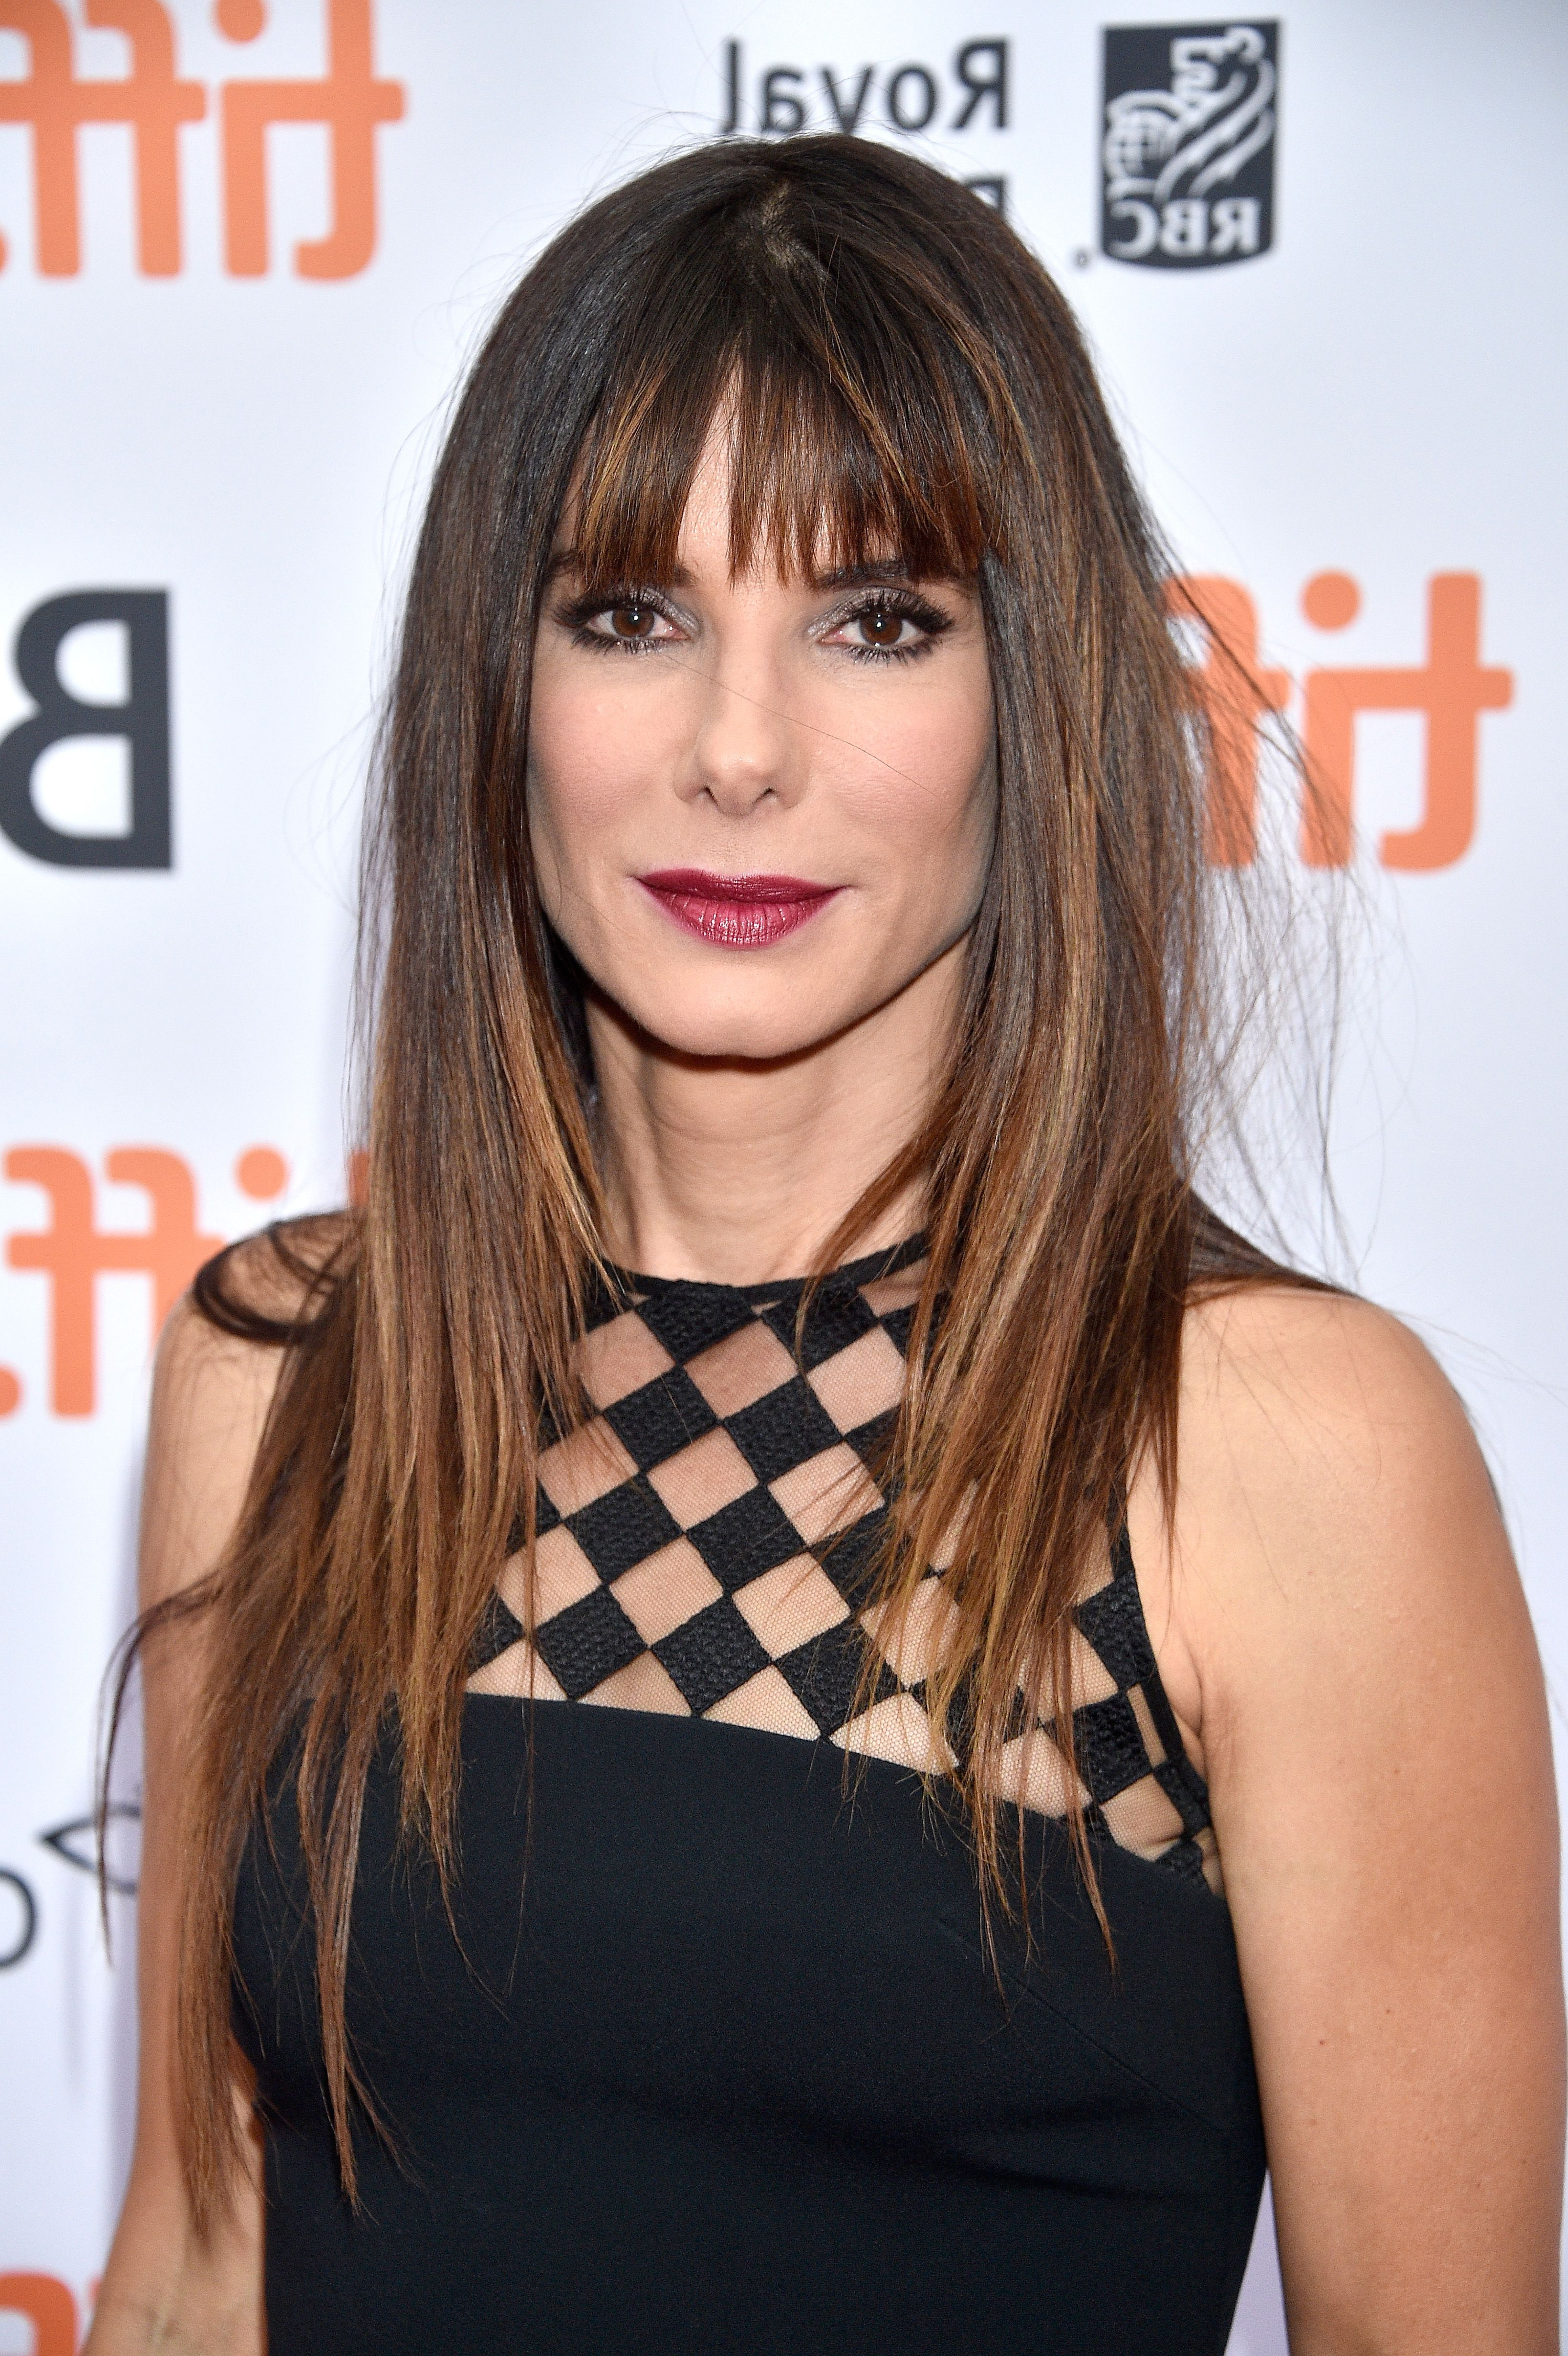 40 Best Layered Haircuts, Hairstyles & Trends For 2018 Throughout Latest Medium Hairstyles With Bangs And Layers (View 17 of 20)